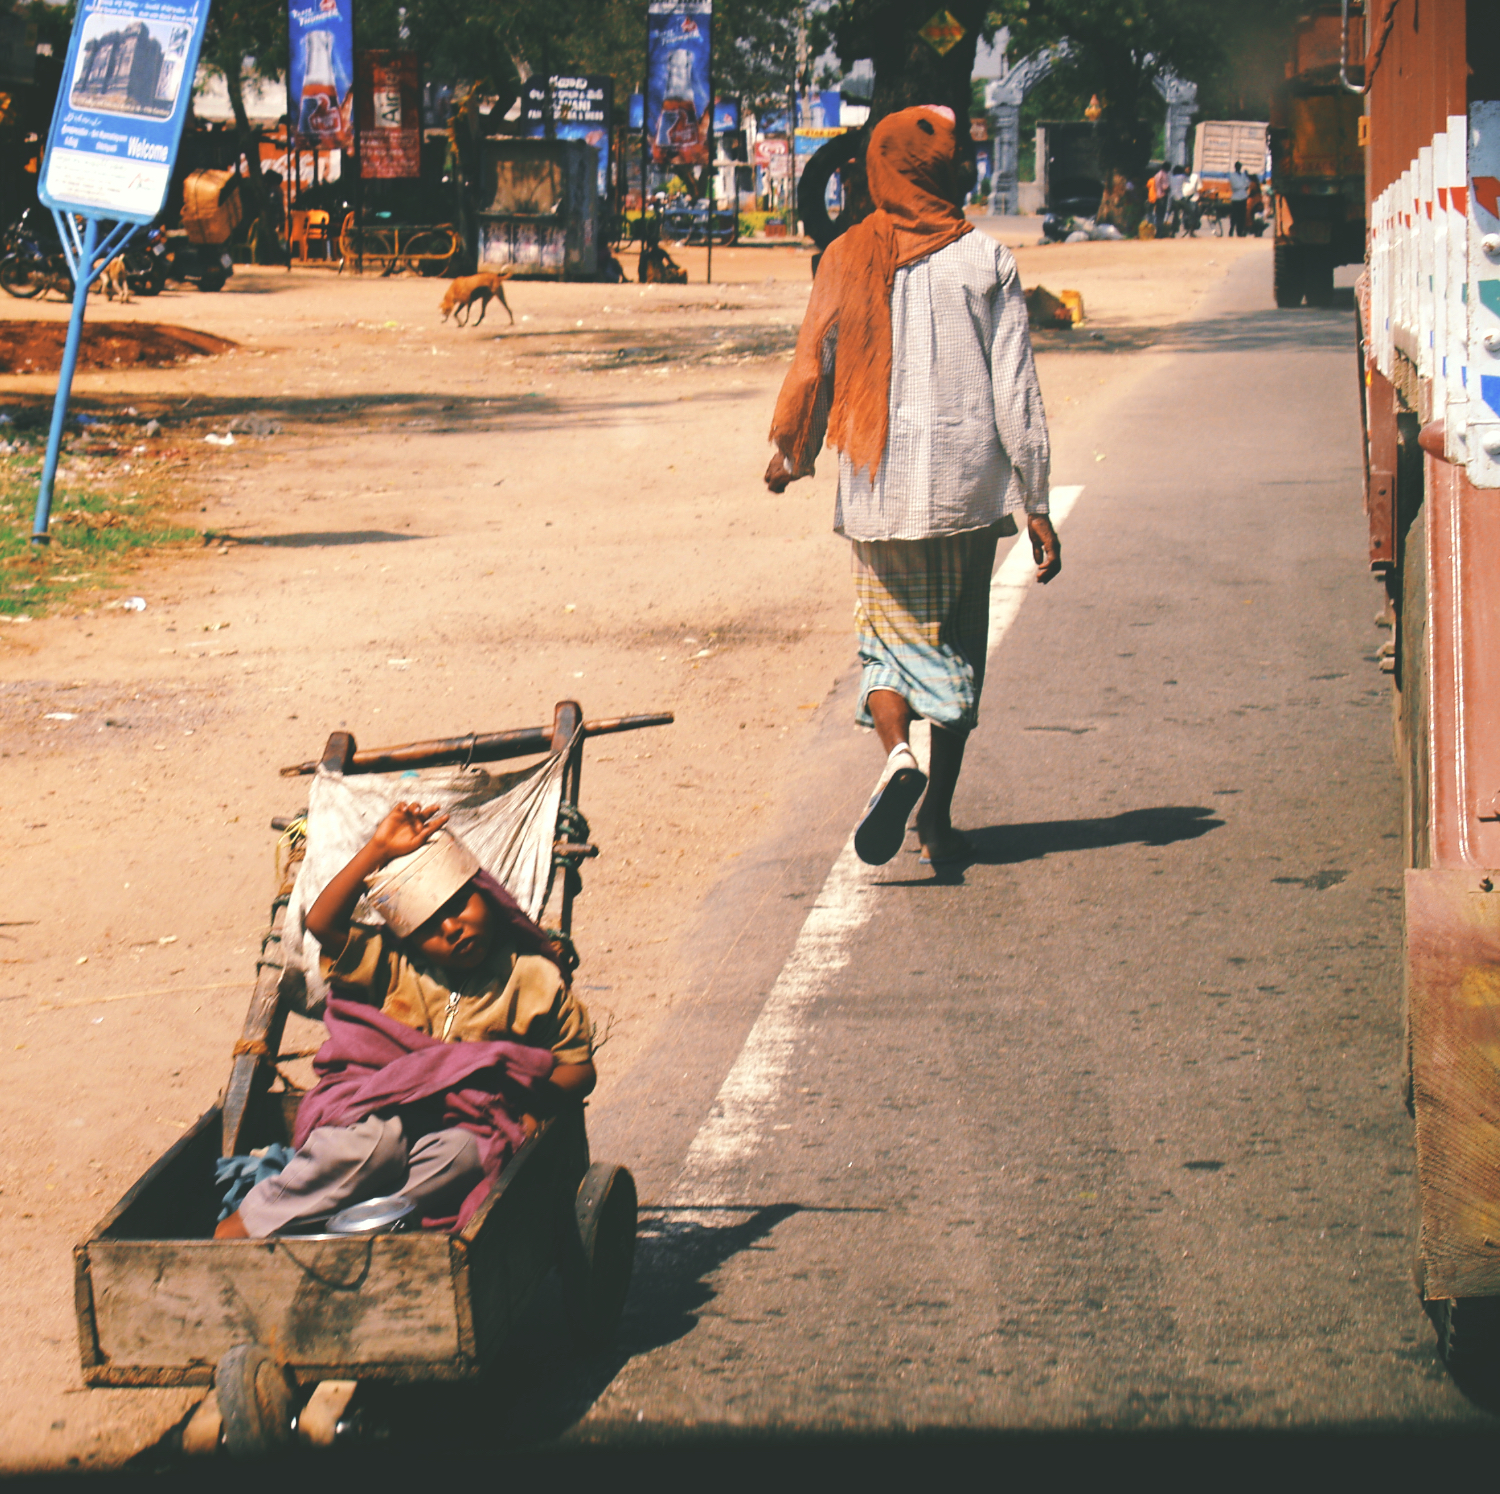 Disabled child poverty begging with father hyderabad india